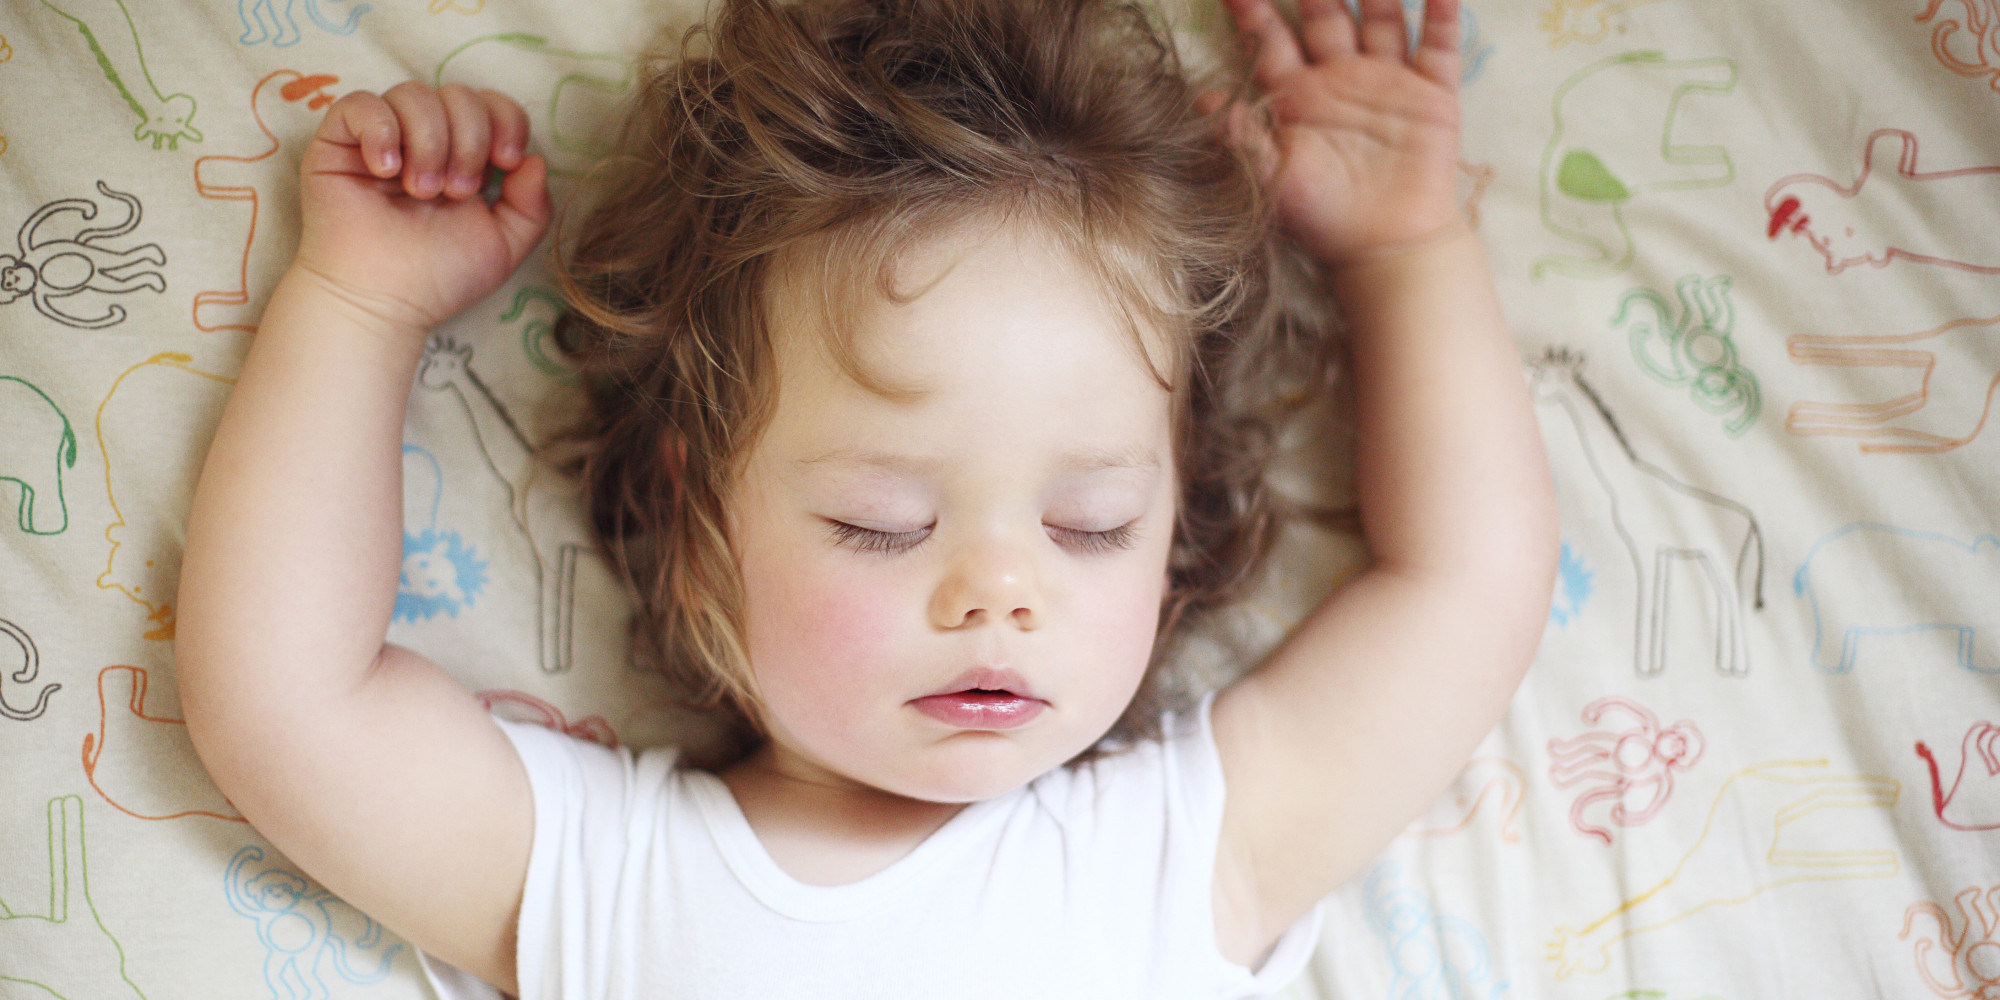 Toddlers Sleep Problems Tied To Behavior Issues Later